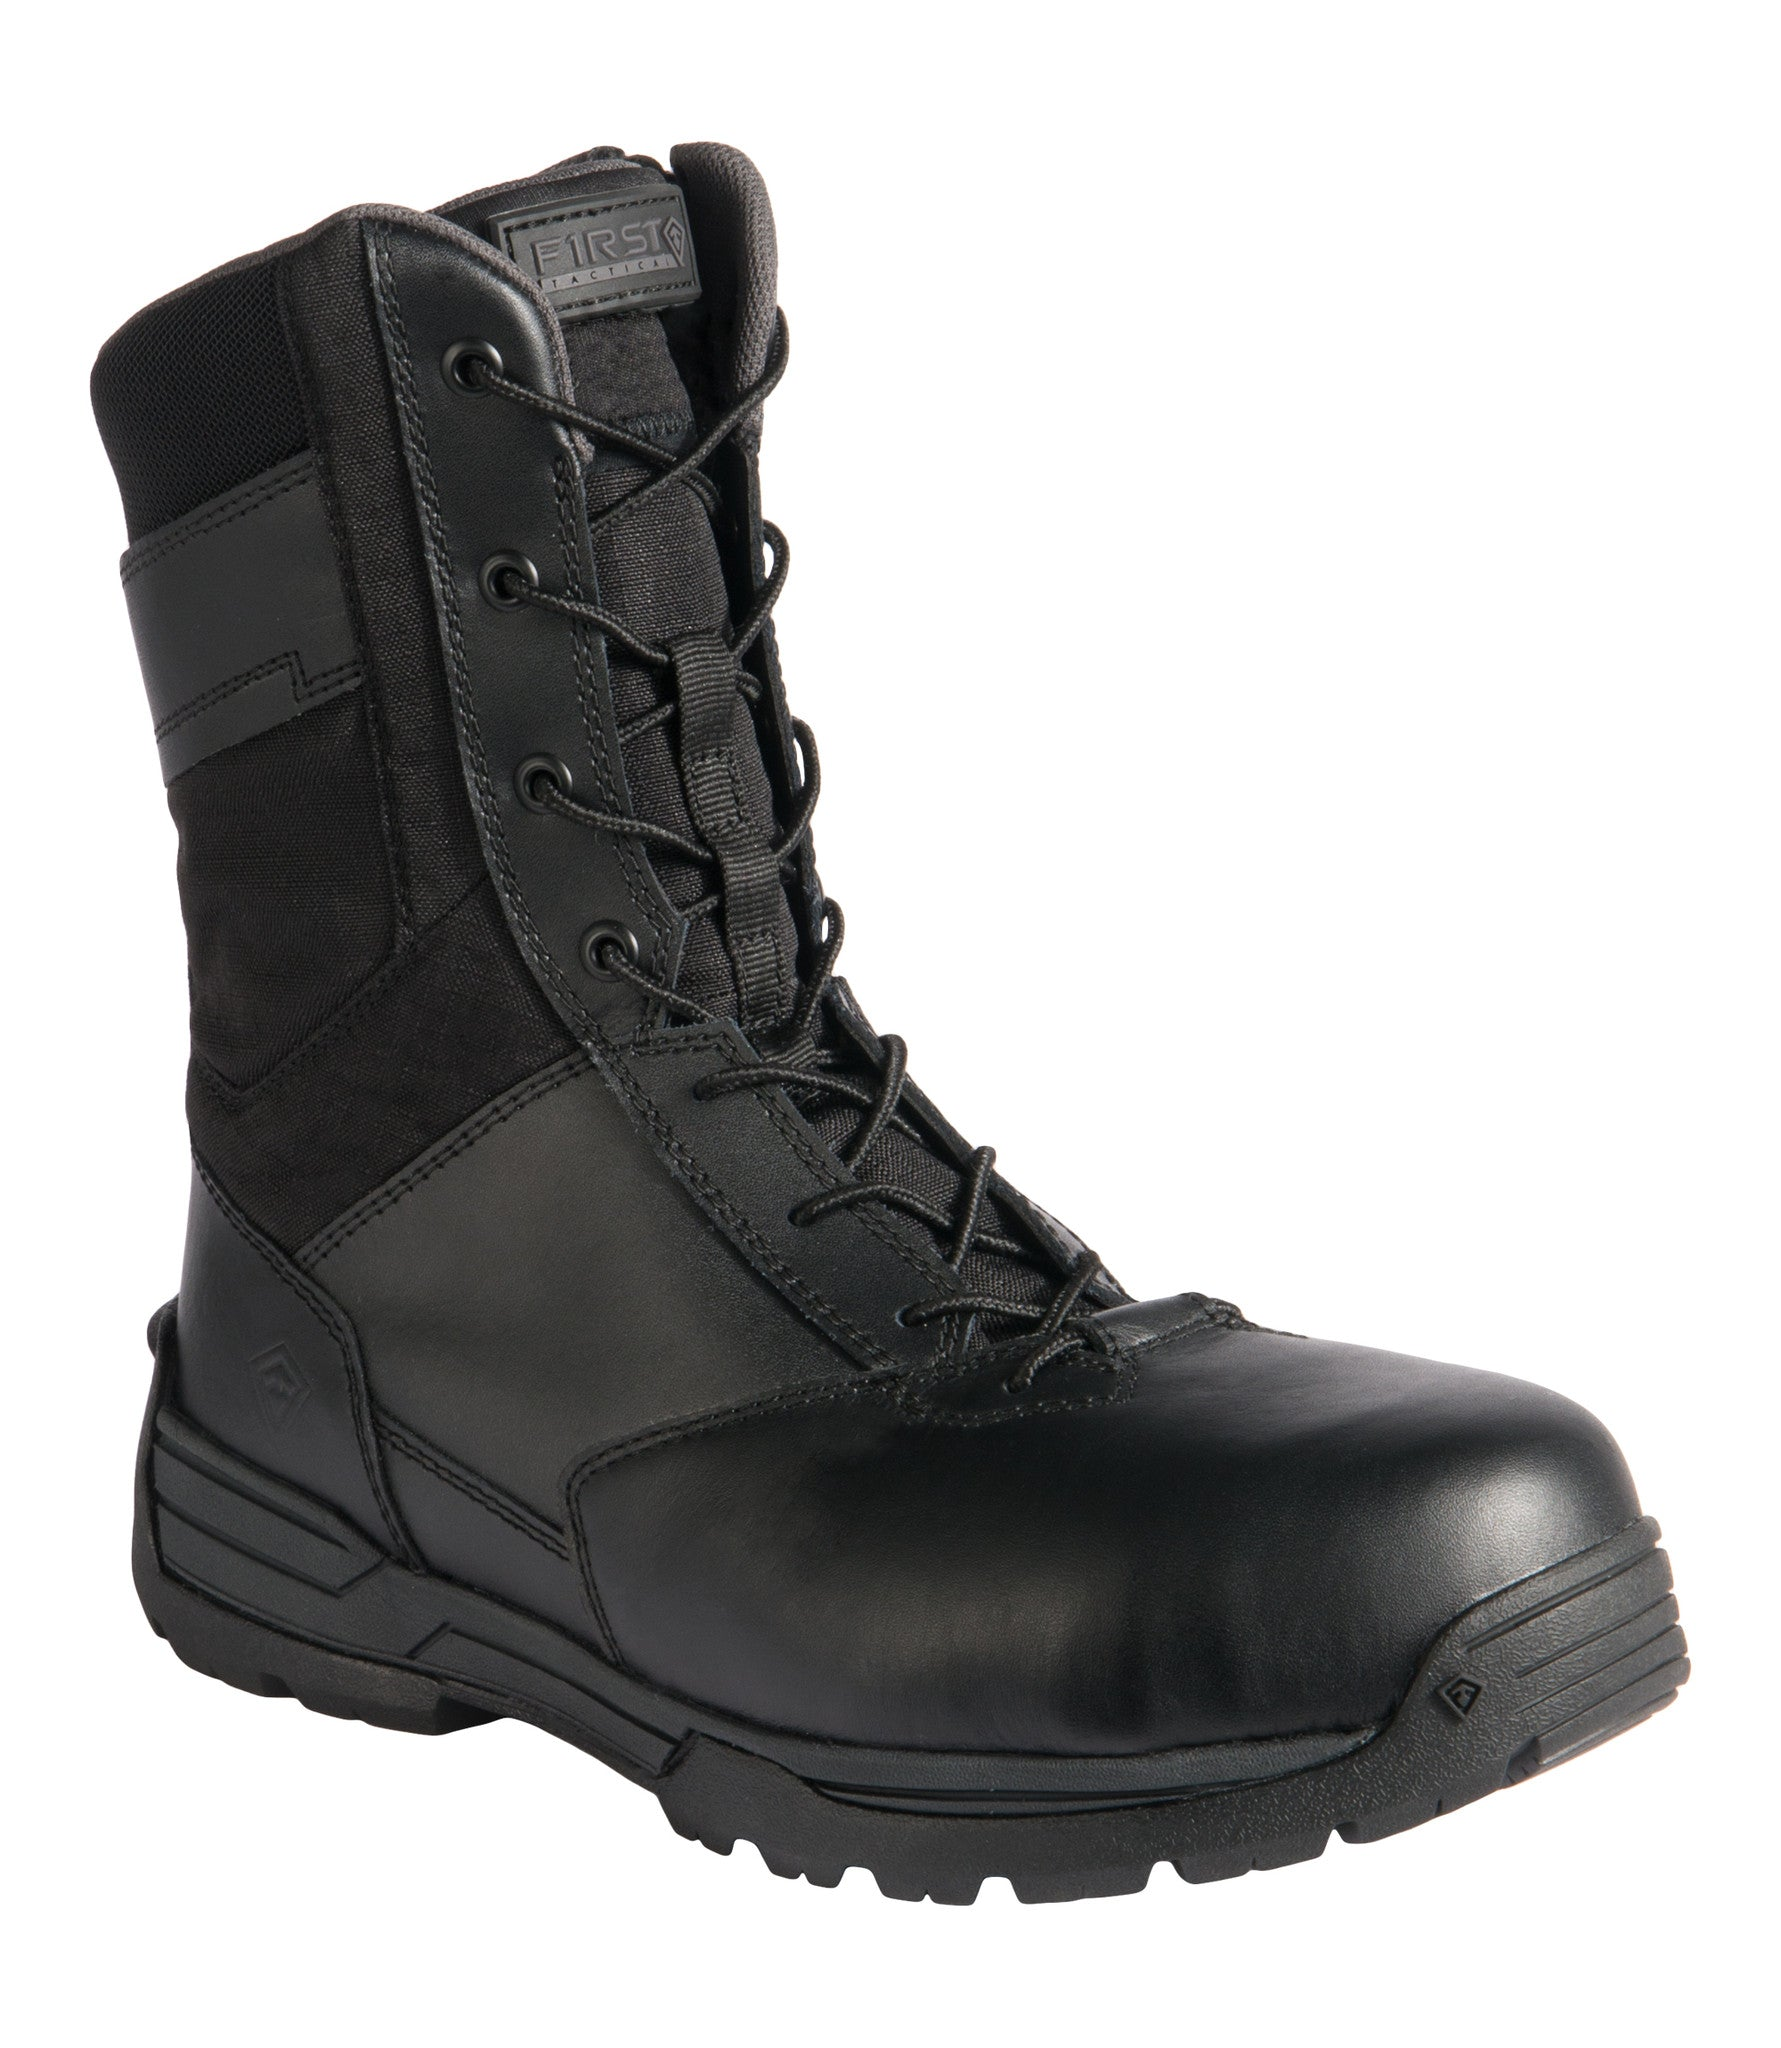 """5128a8954977b7 Men's 8"""" Safety Toe Side Zip Duty Boot 